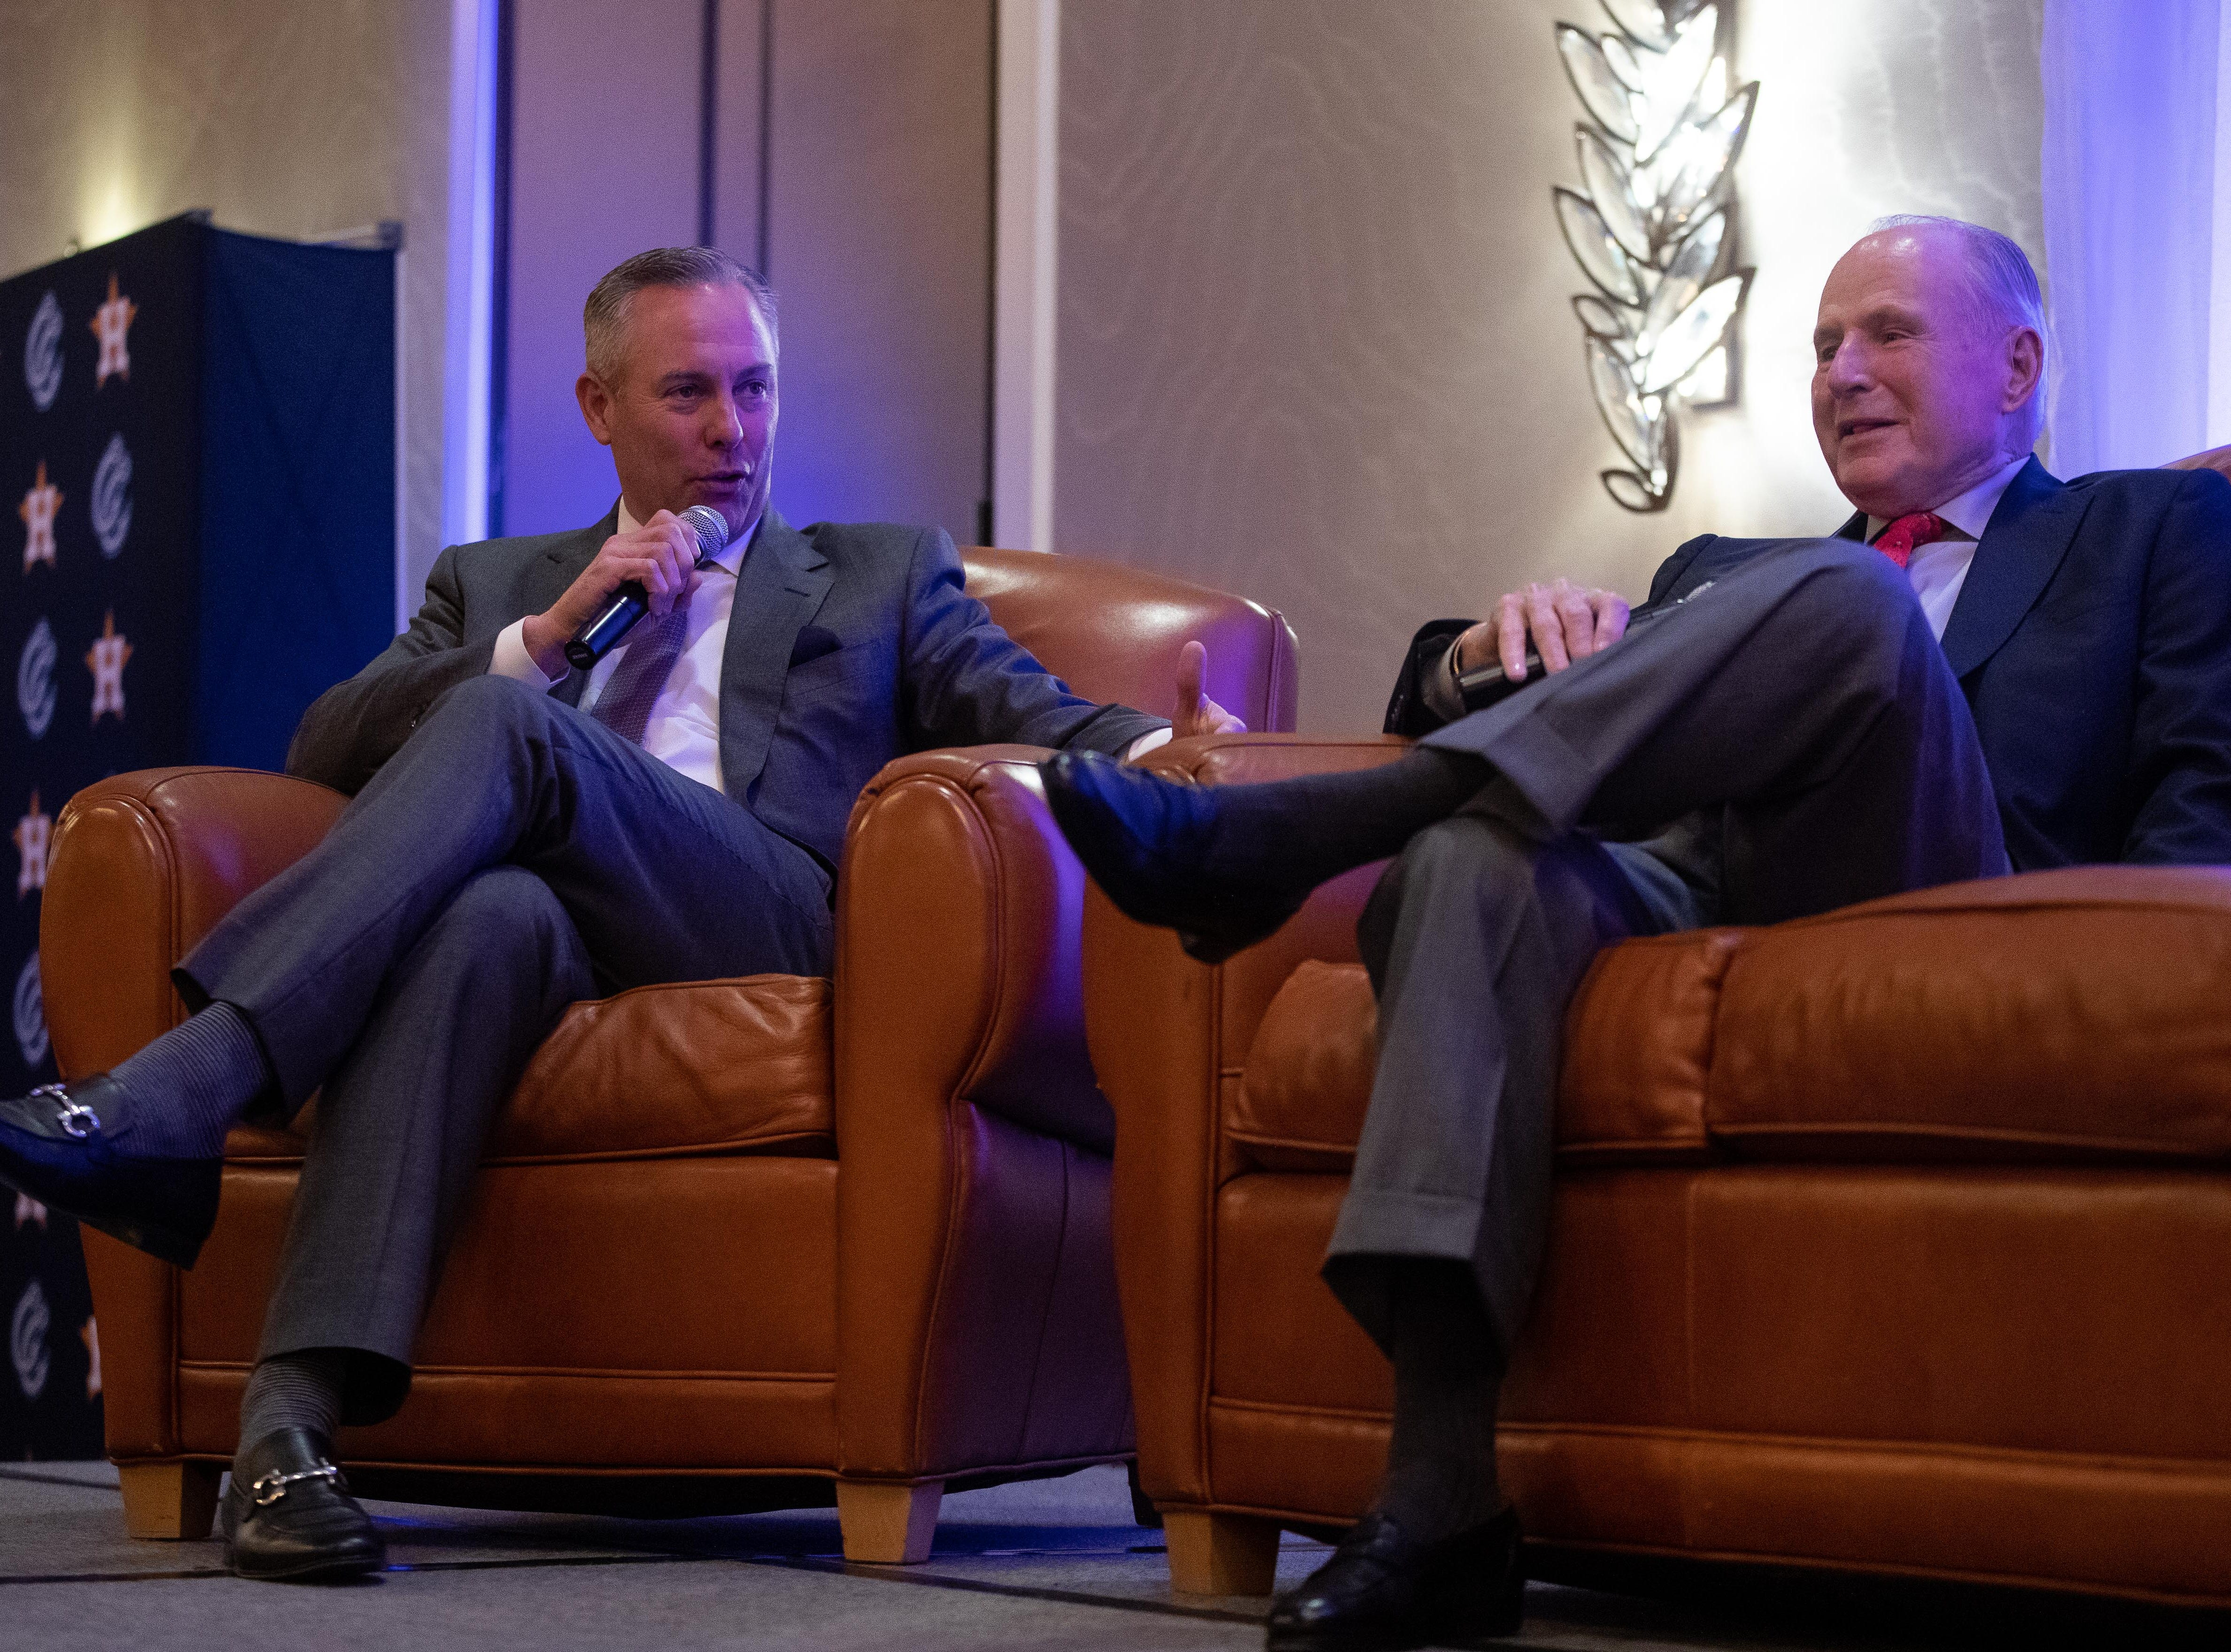 Huston Astros President Reid Ryan tells a story about Don Sanders during the Hooks South Texas Baseball Banquet at the Omni Hotel on Thursday, Jan. 24, 2019.